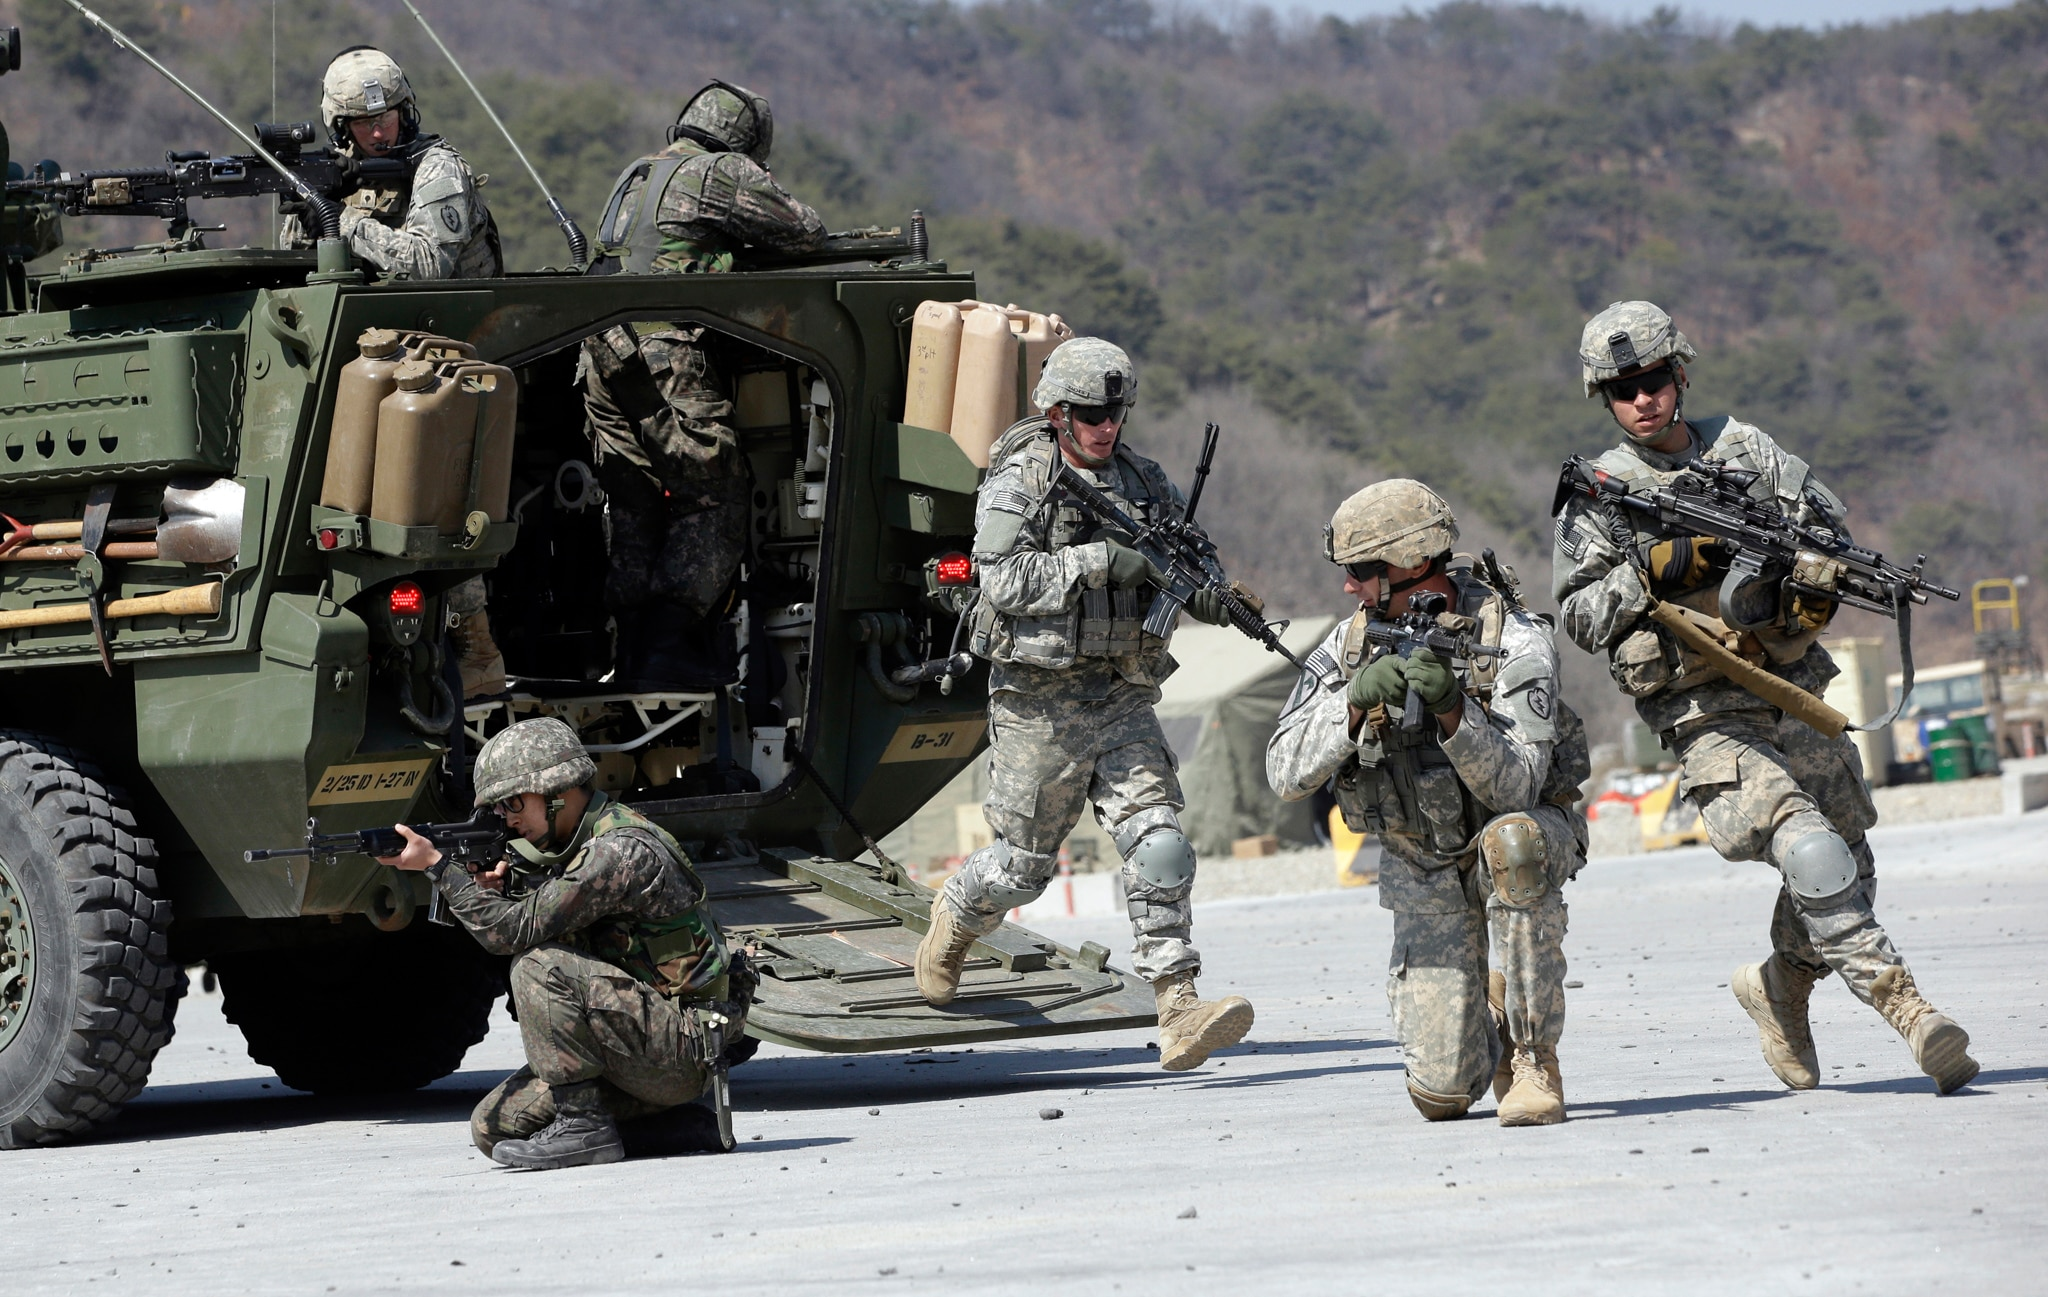 U.S. and South Korean soldiers taking positions (©Lee Jin-man/AP Images)